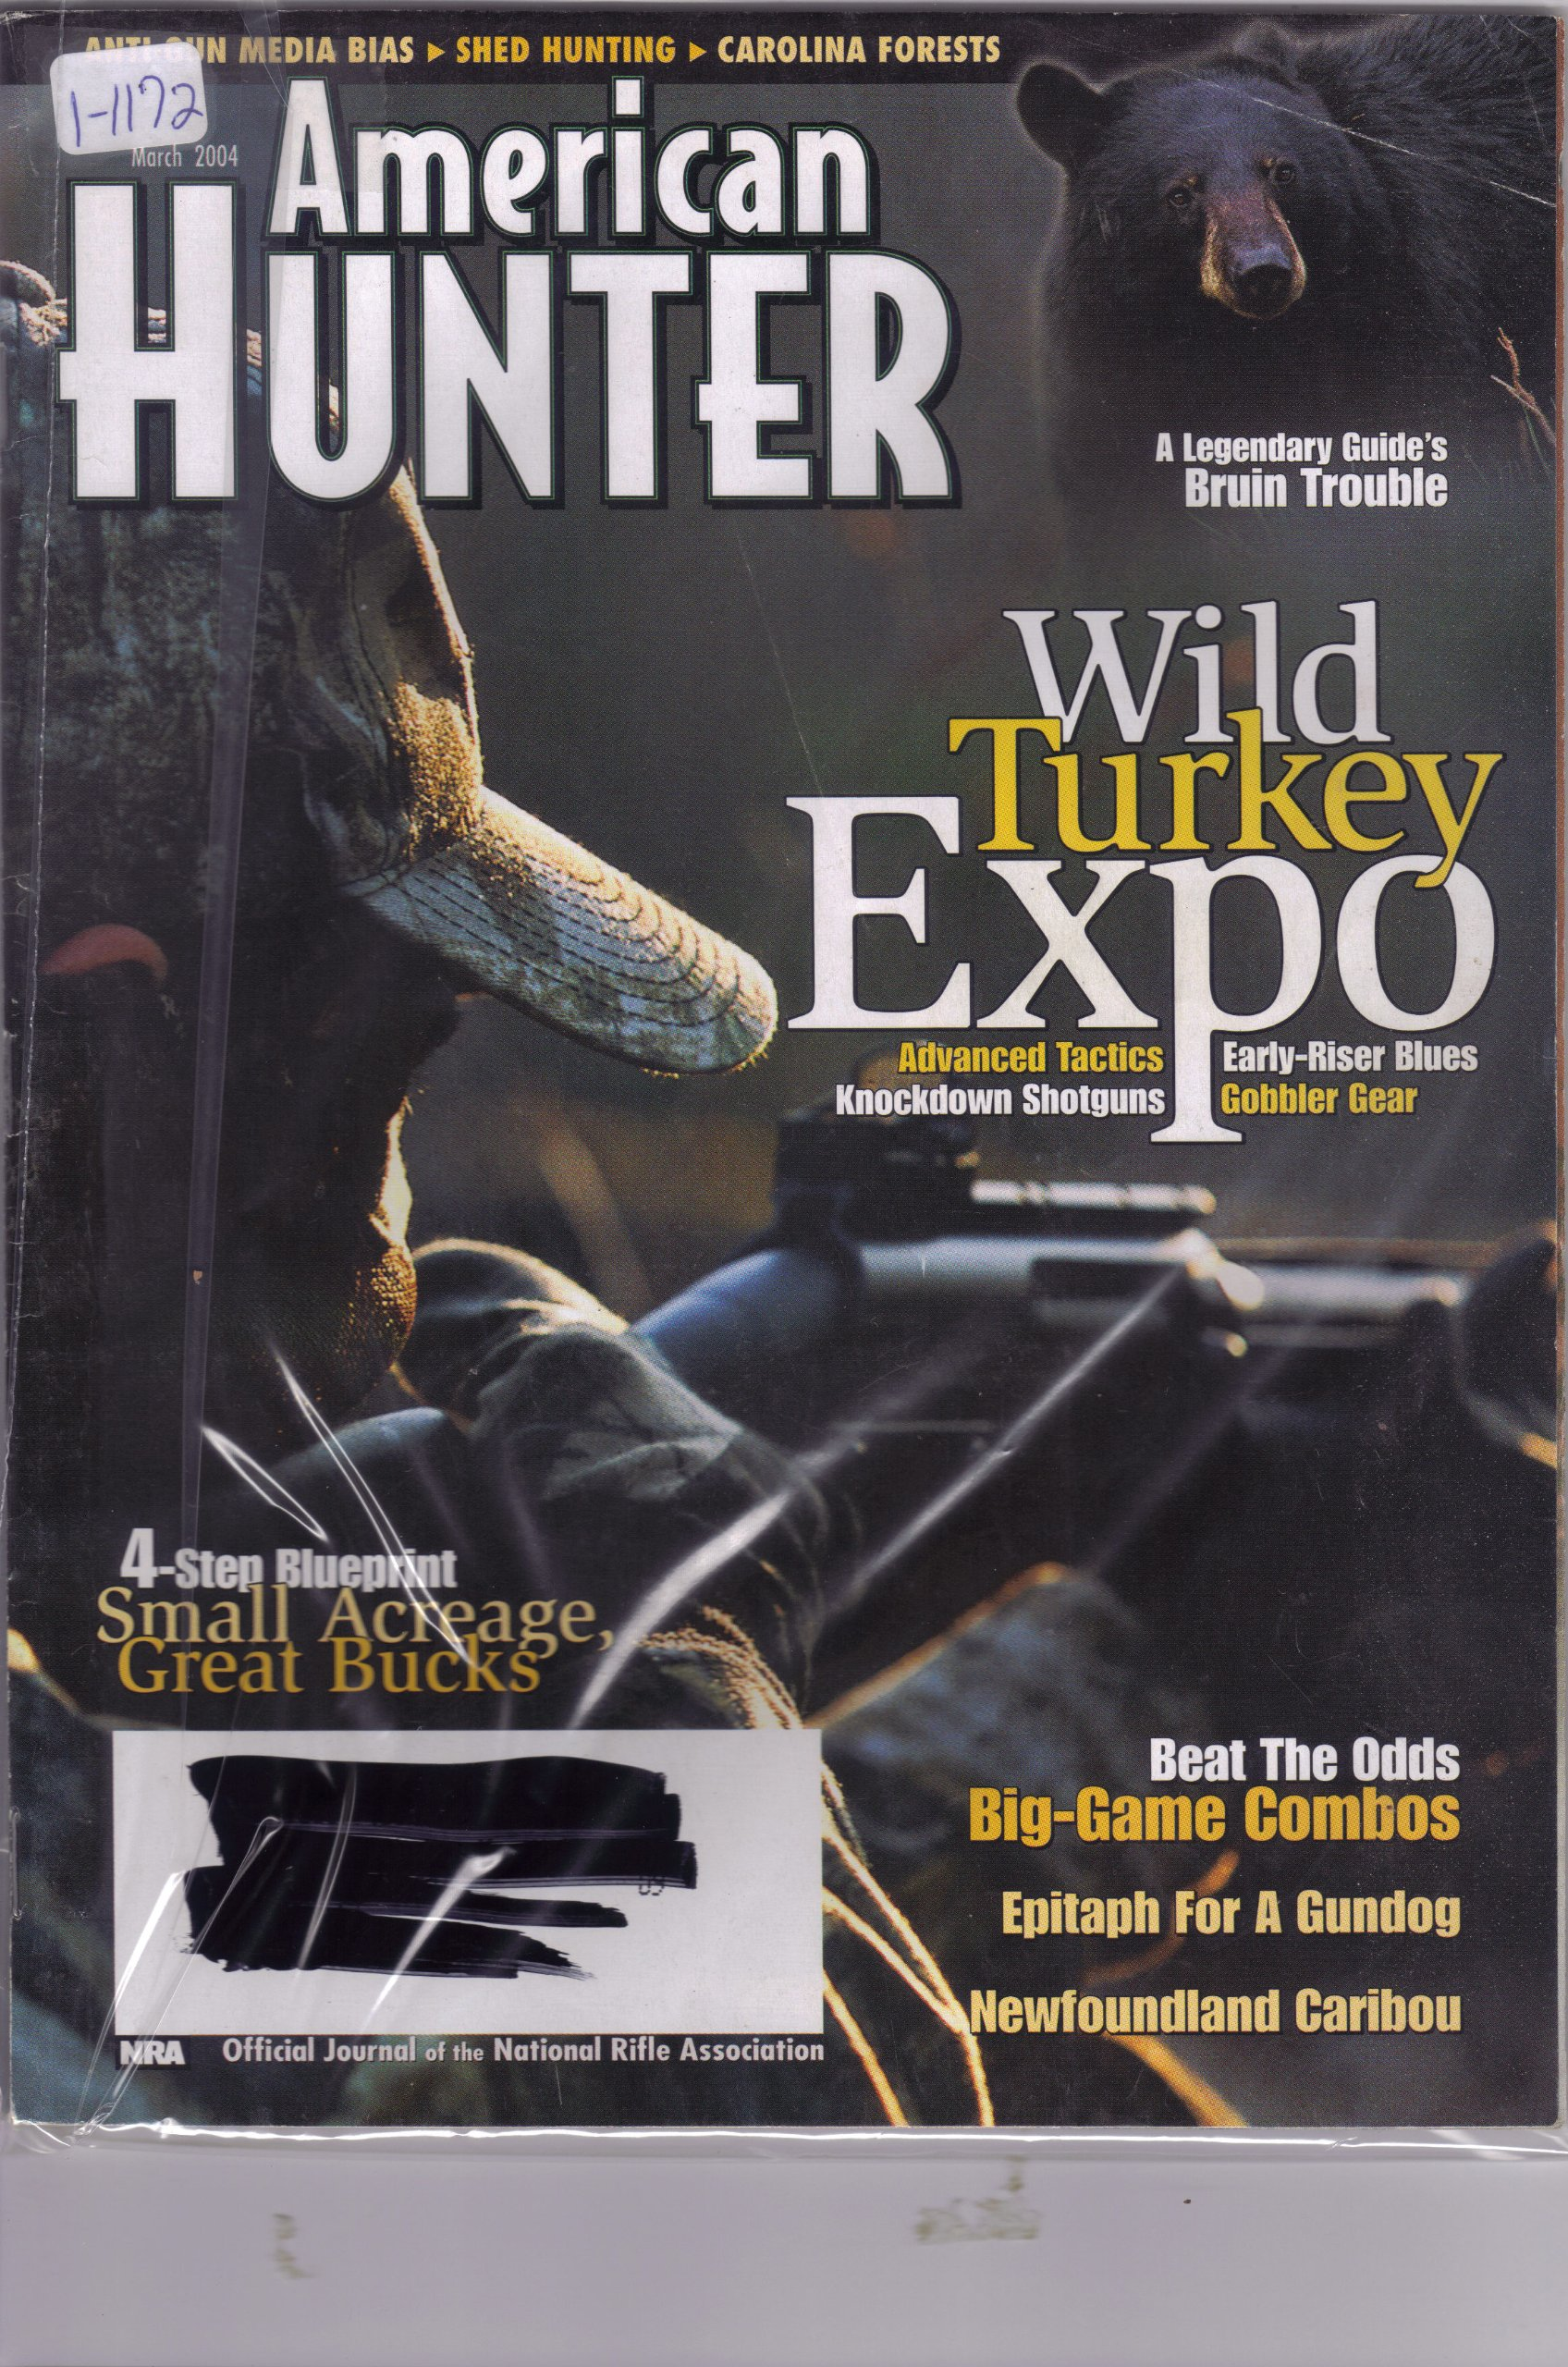 American Hunter Magazine March 2004 (1-1172, Wild turkey expo advanced tactics early-riser blues knockdown shotguns gobbler gear.) pdf